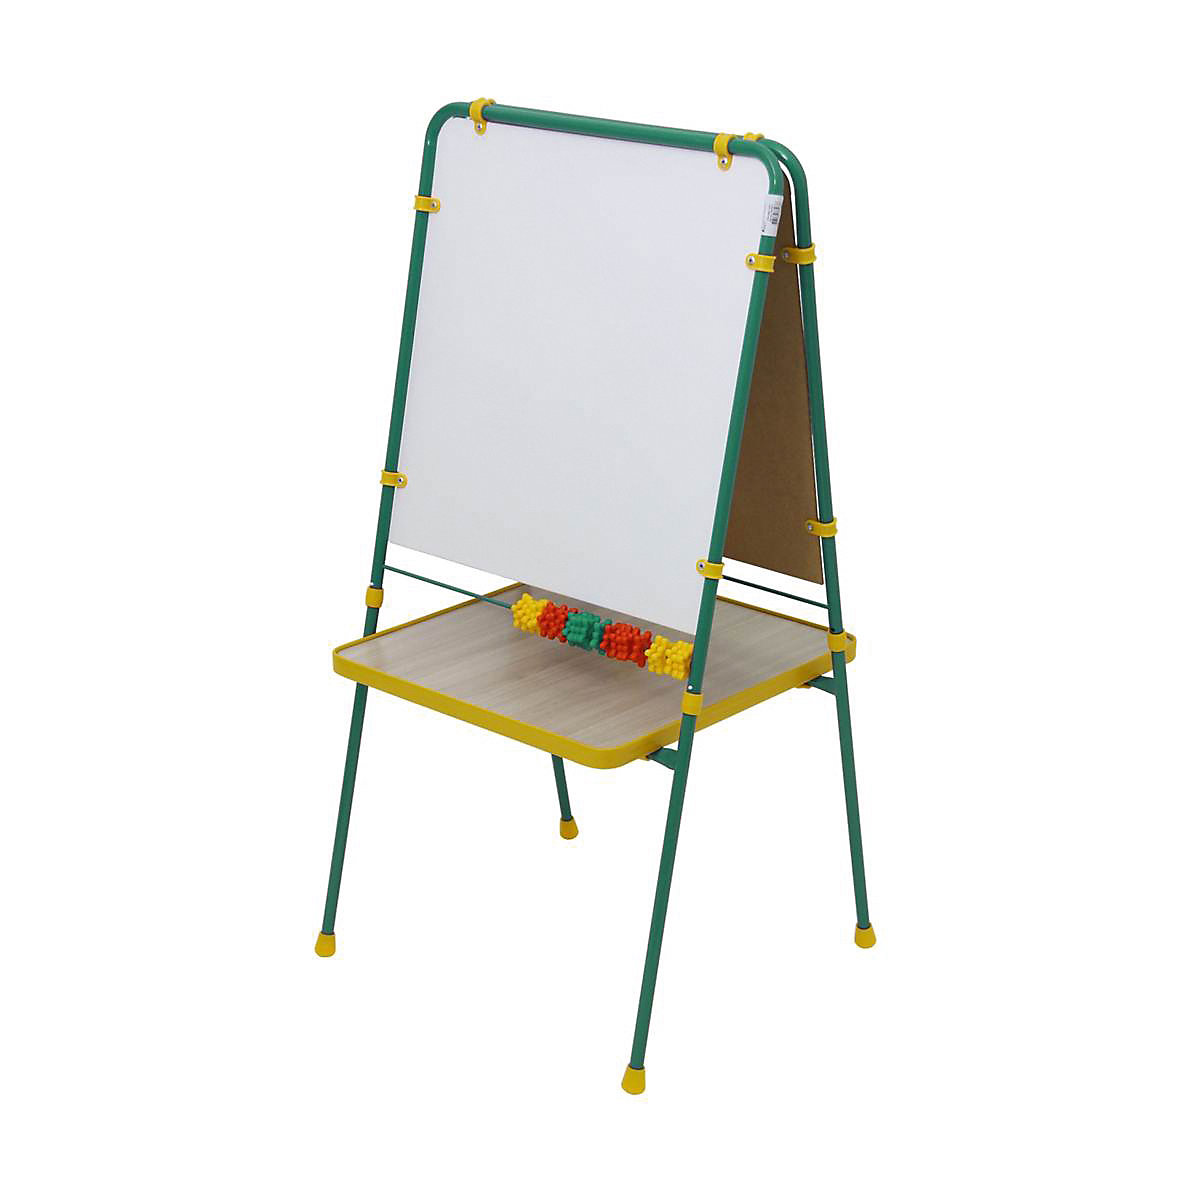 Drawing Toys FEYA 8645861 Easel Board Sets Creativity 3D pen Kids Coloring Pages